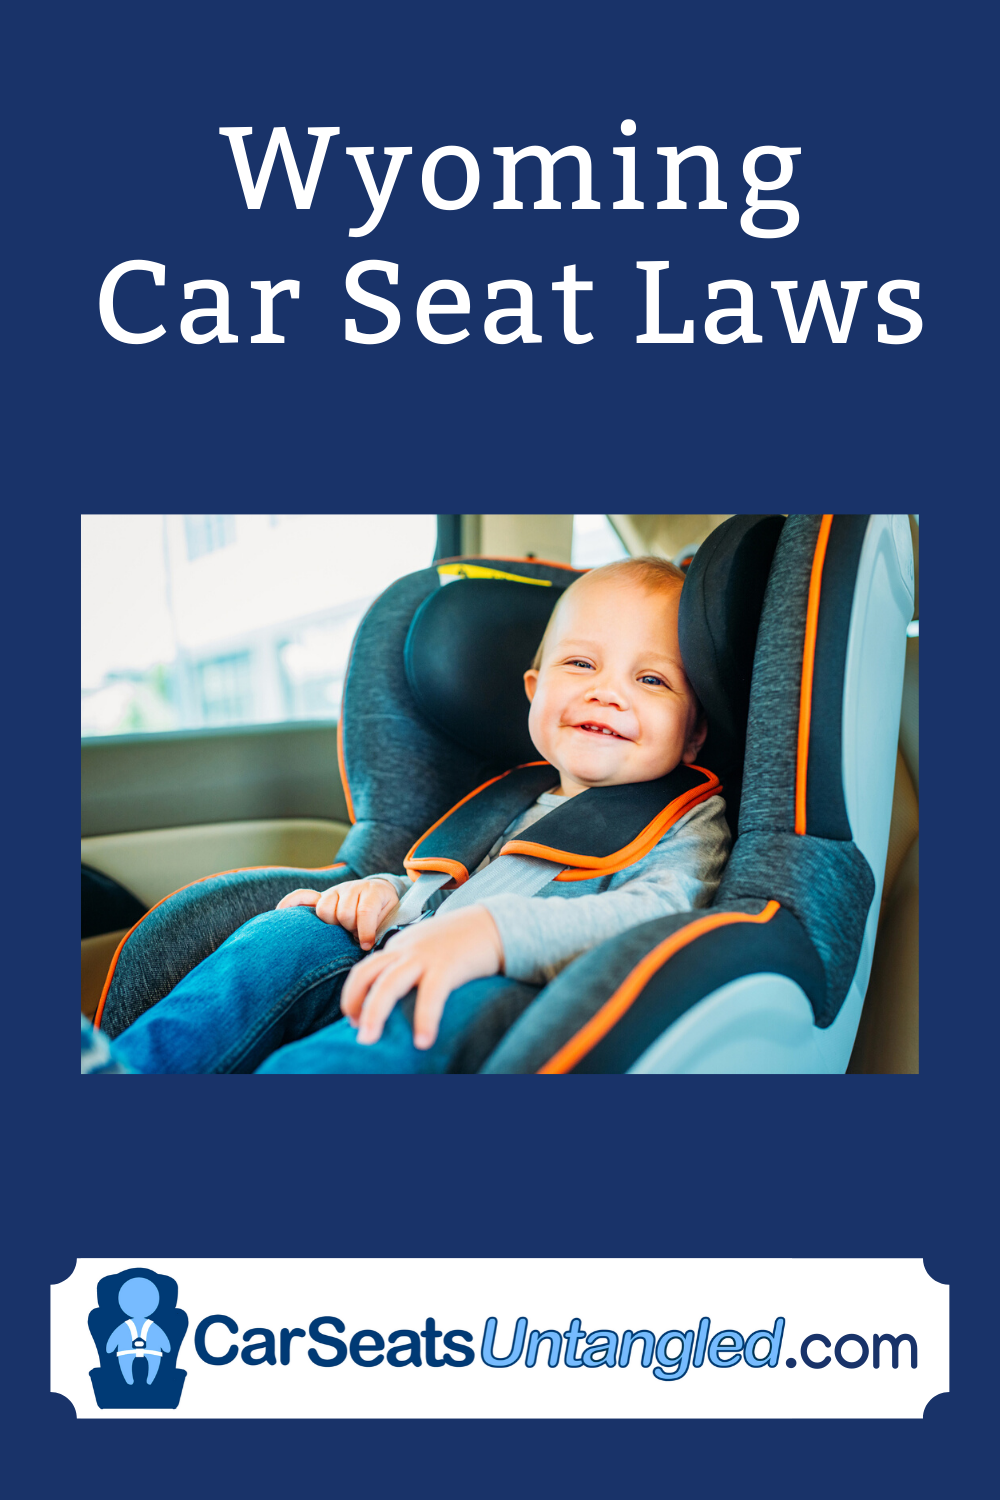 Wyoming Car Seat Law in 2020 Child passenger safety, Car